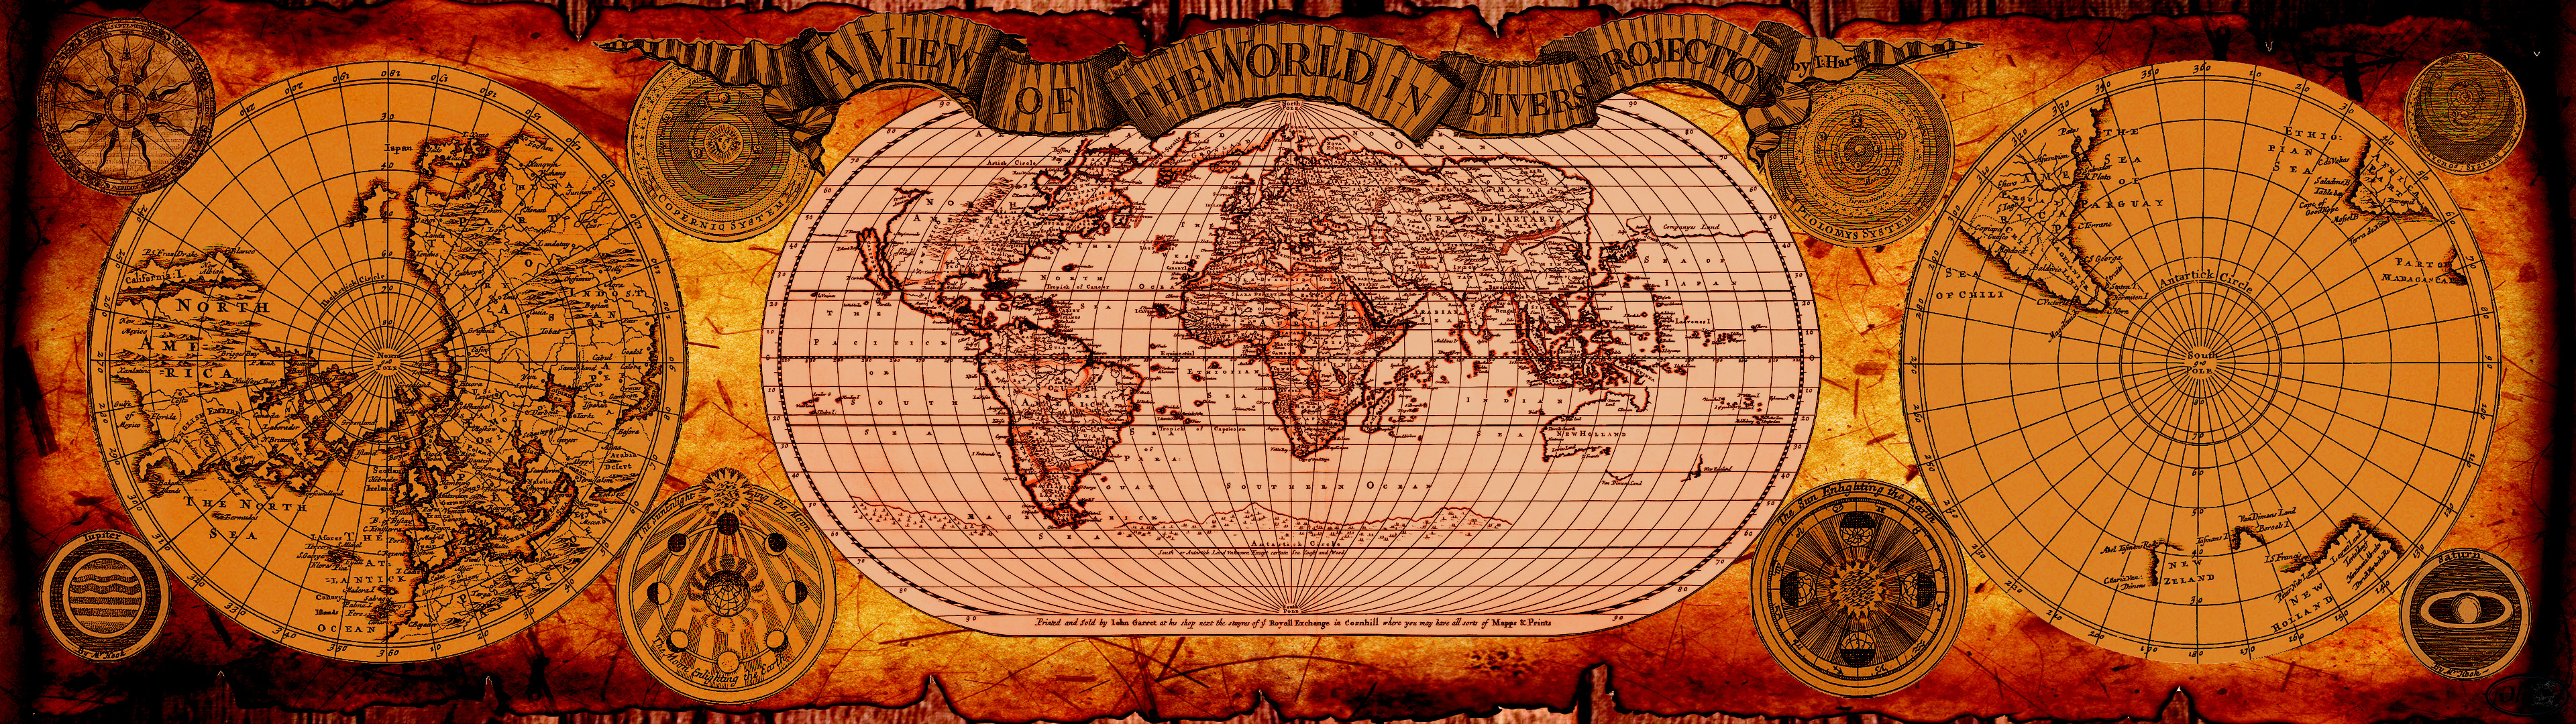 Images of ancient wallpaper world map fan an ancient map by cutty sark on deviantart ancient wallpaper world gumiabroncs Gallery